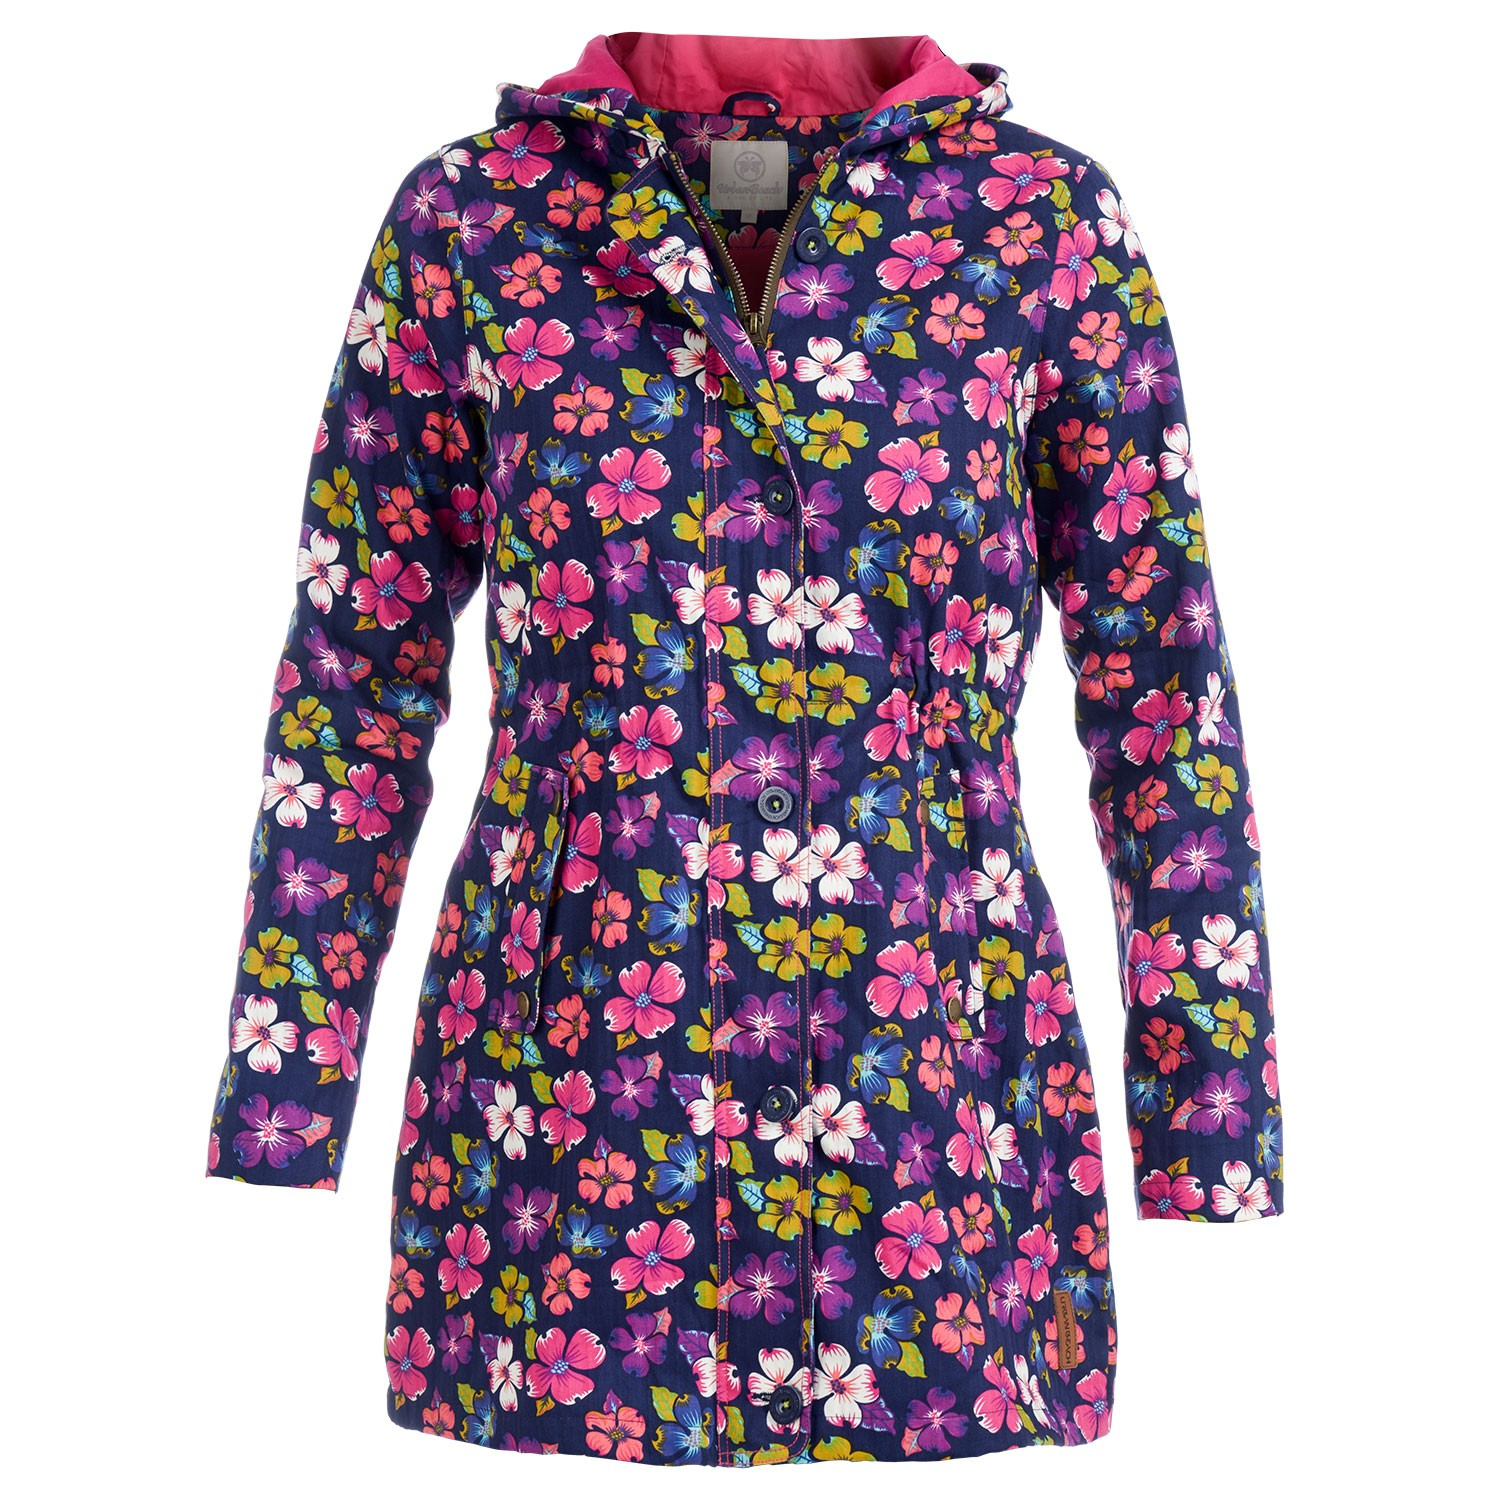 9793dcaeaac Womens Floral Rain Mac Jacket Snowdrop- Free Delivery Over £20 - Urban Beach